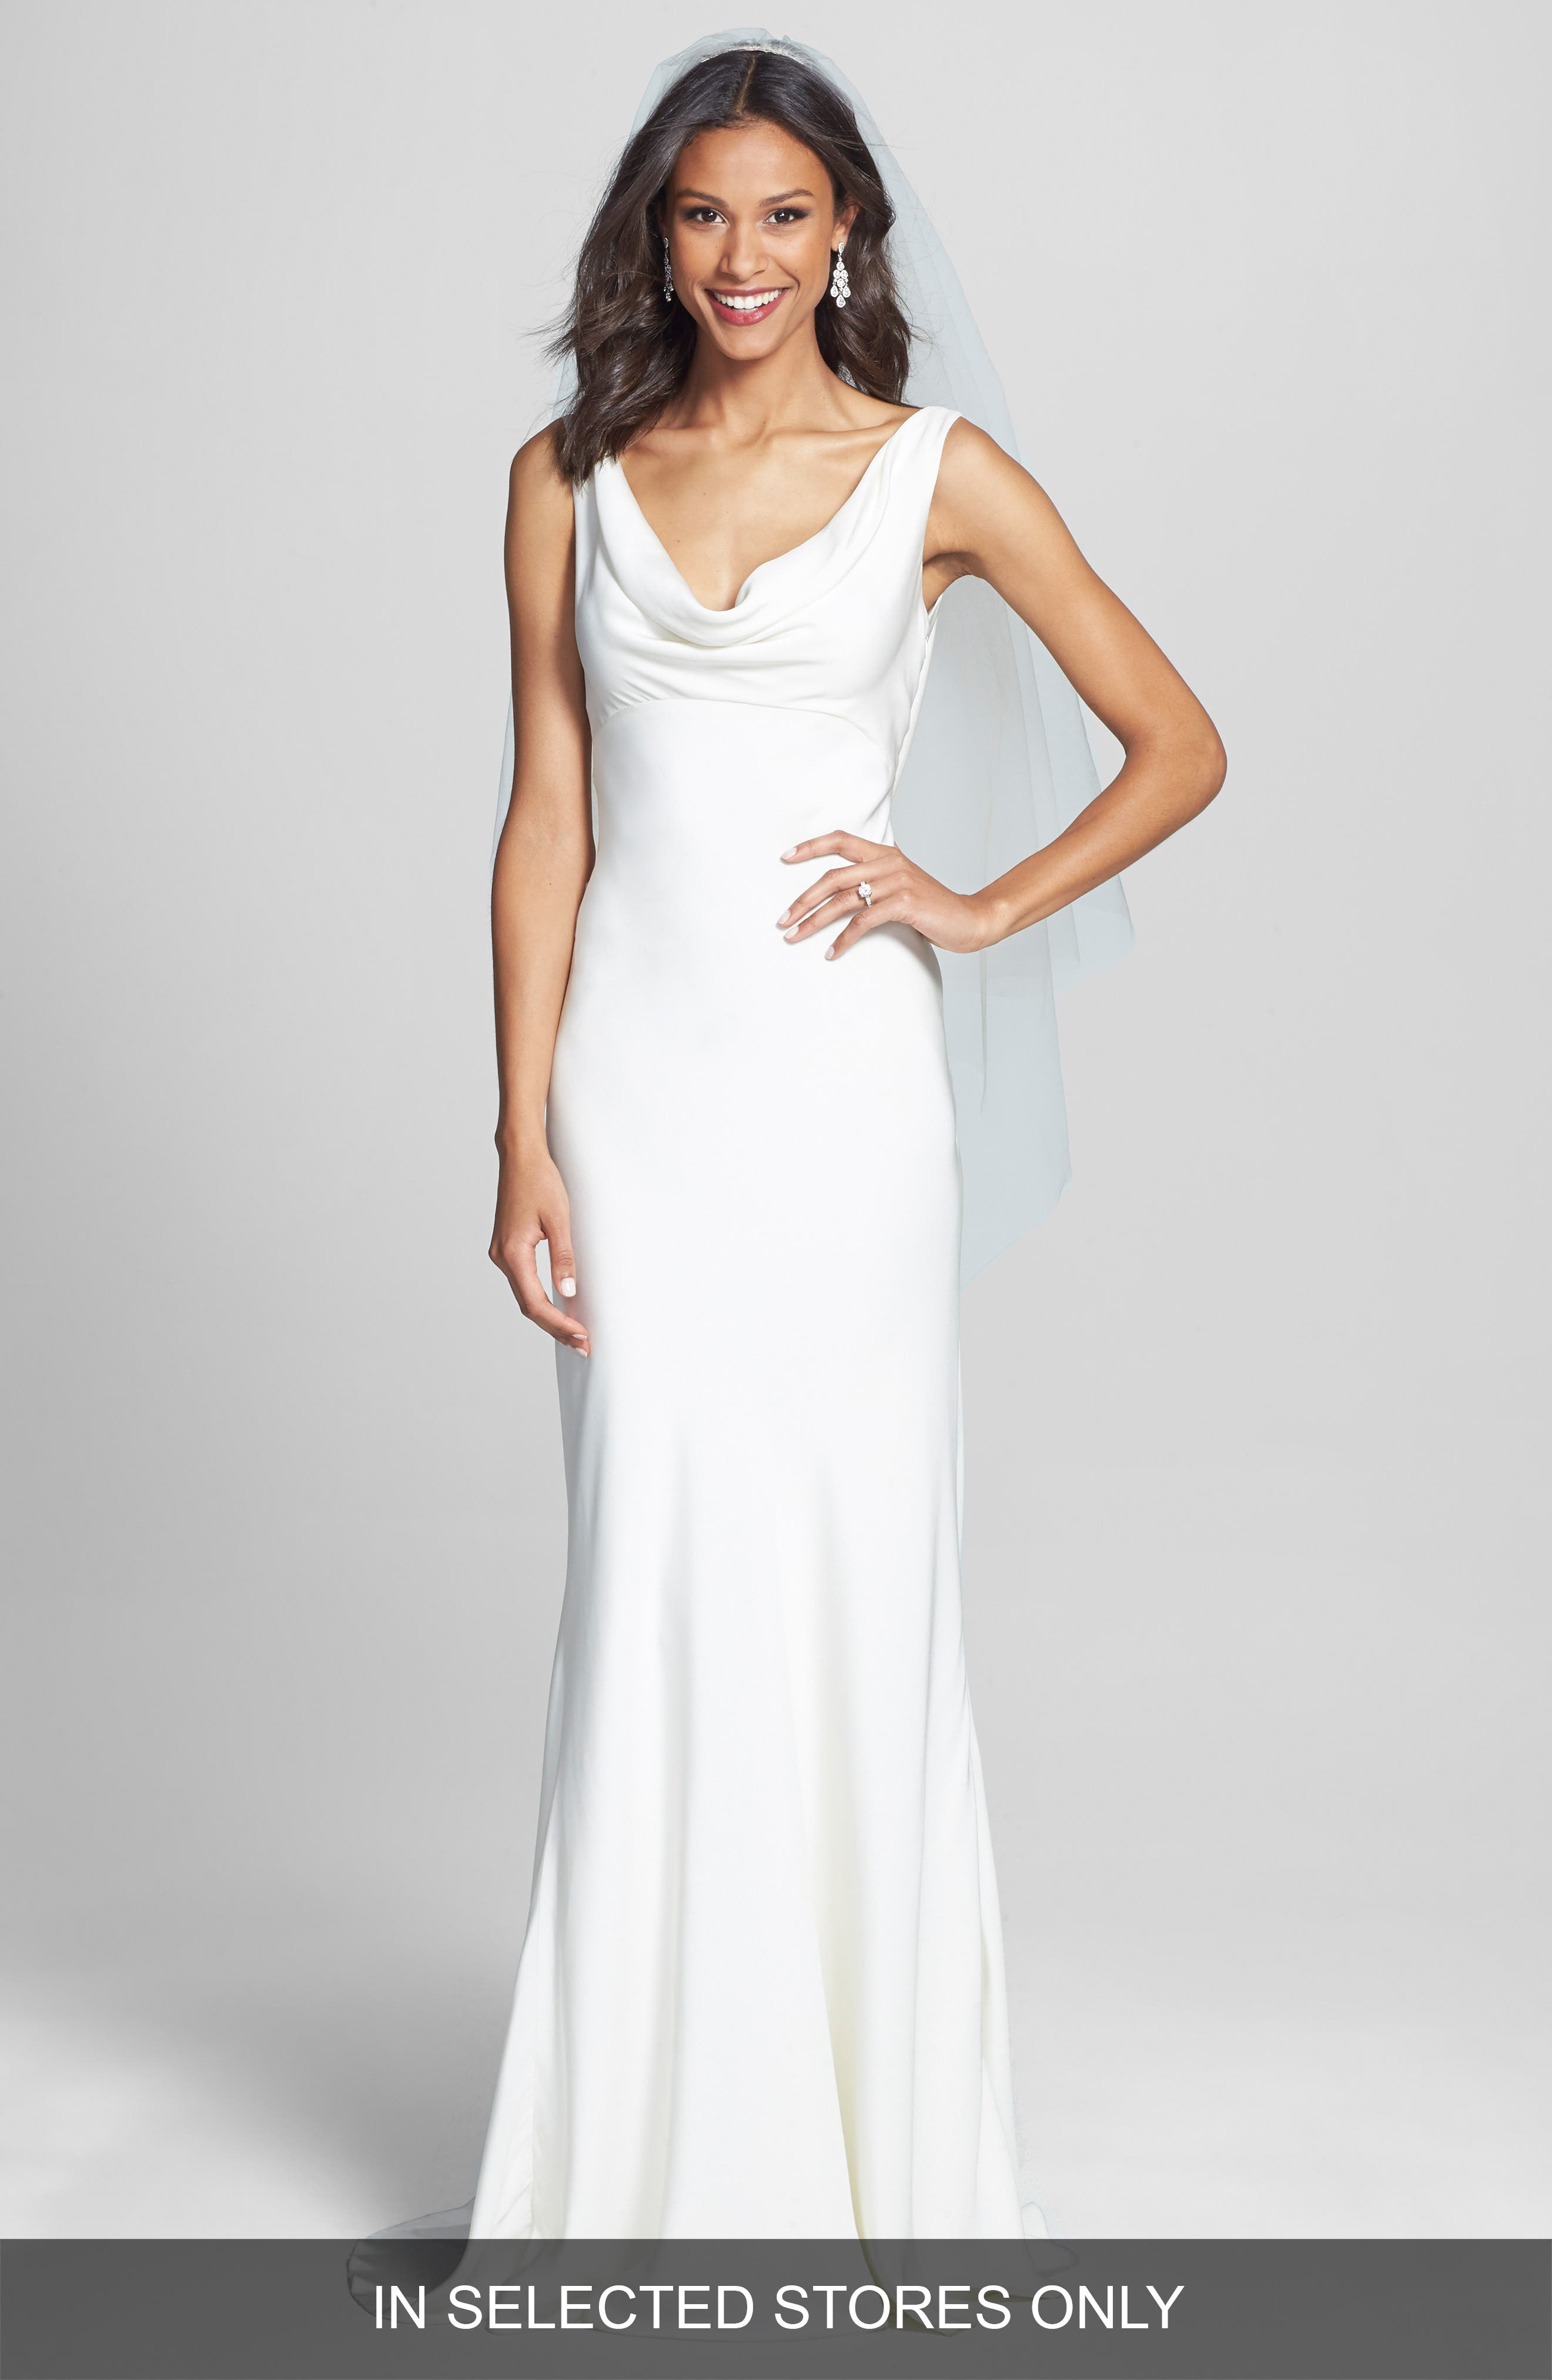 BLISS Monique Lhuillier Draped Neck Silk Crepe Wedding Dress (In Stores Only)